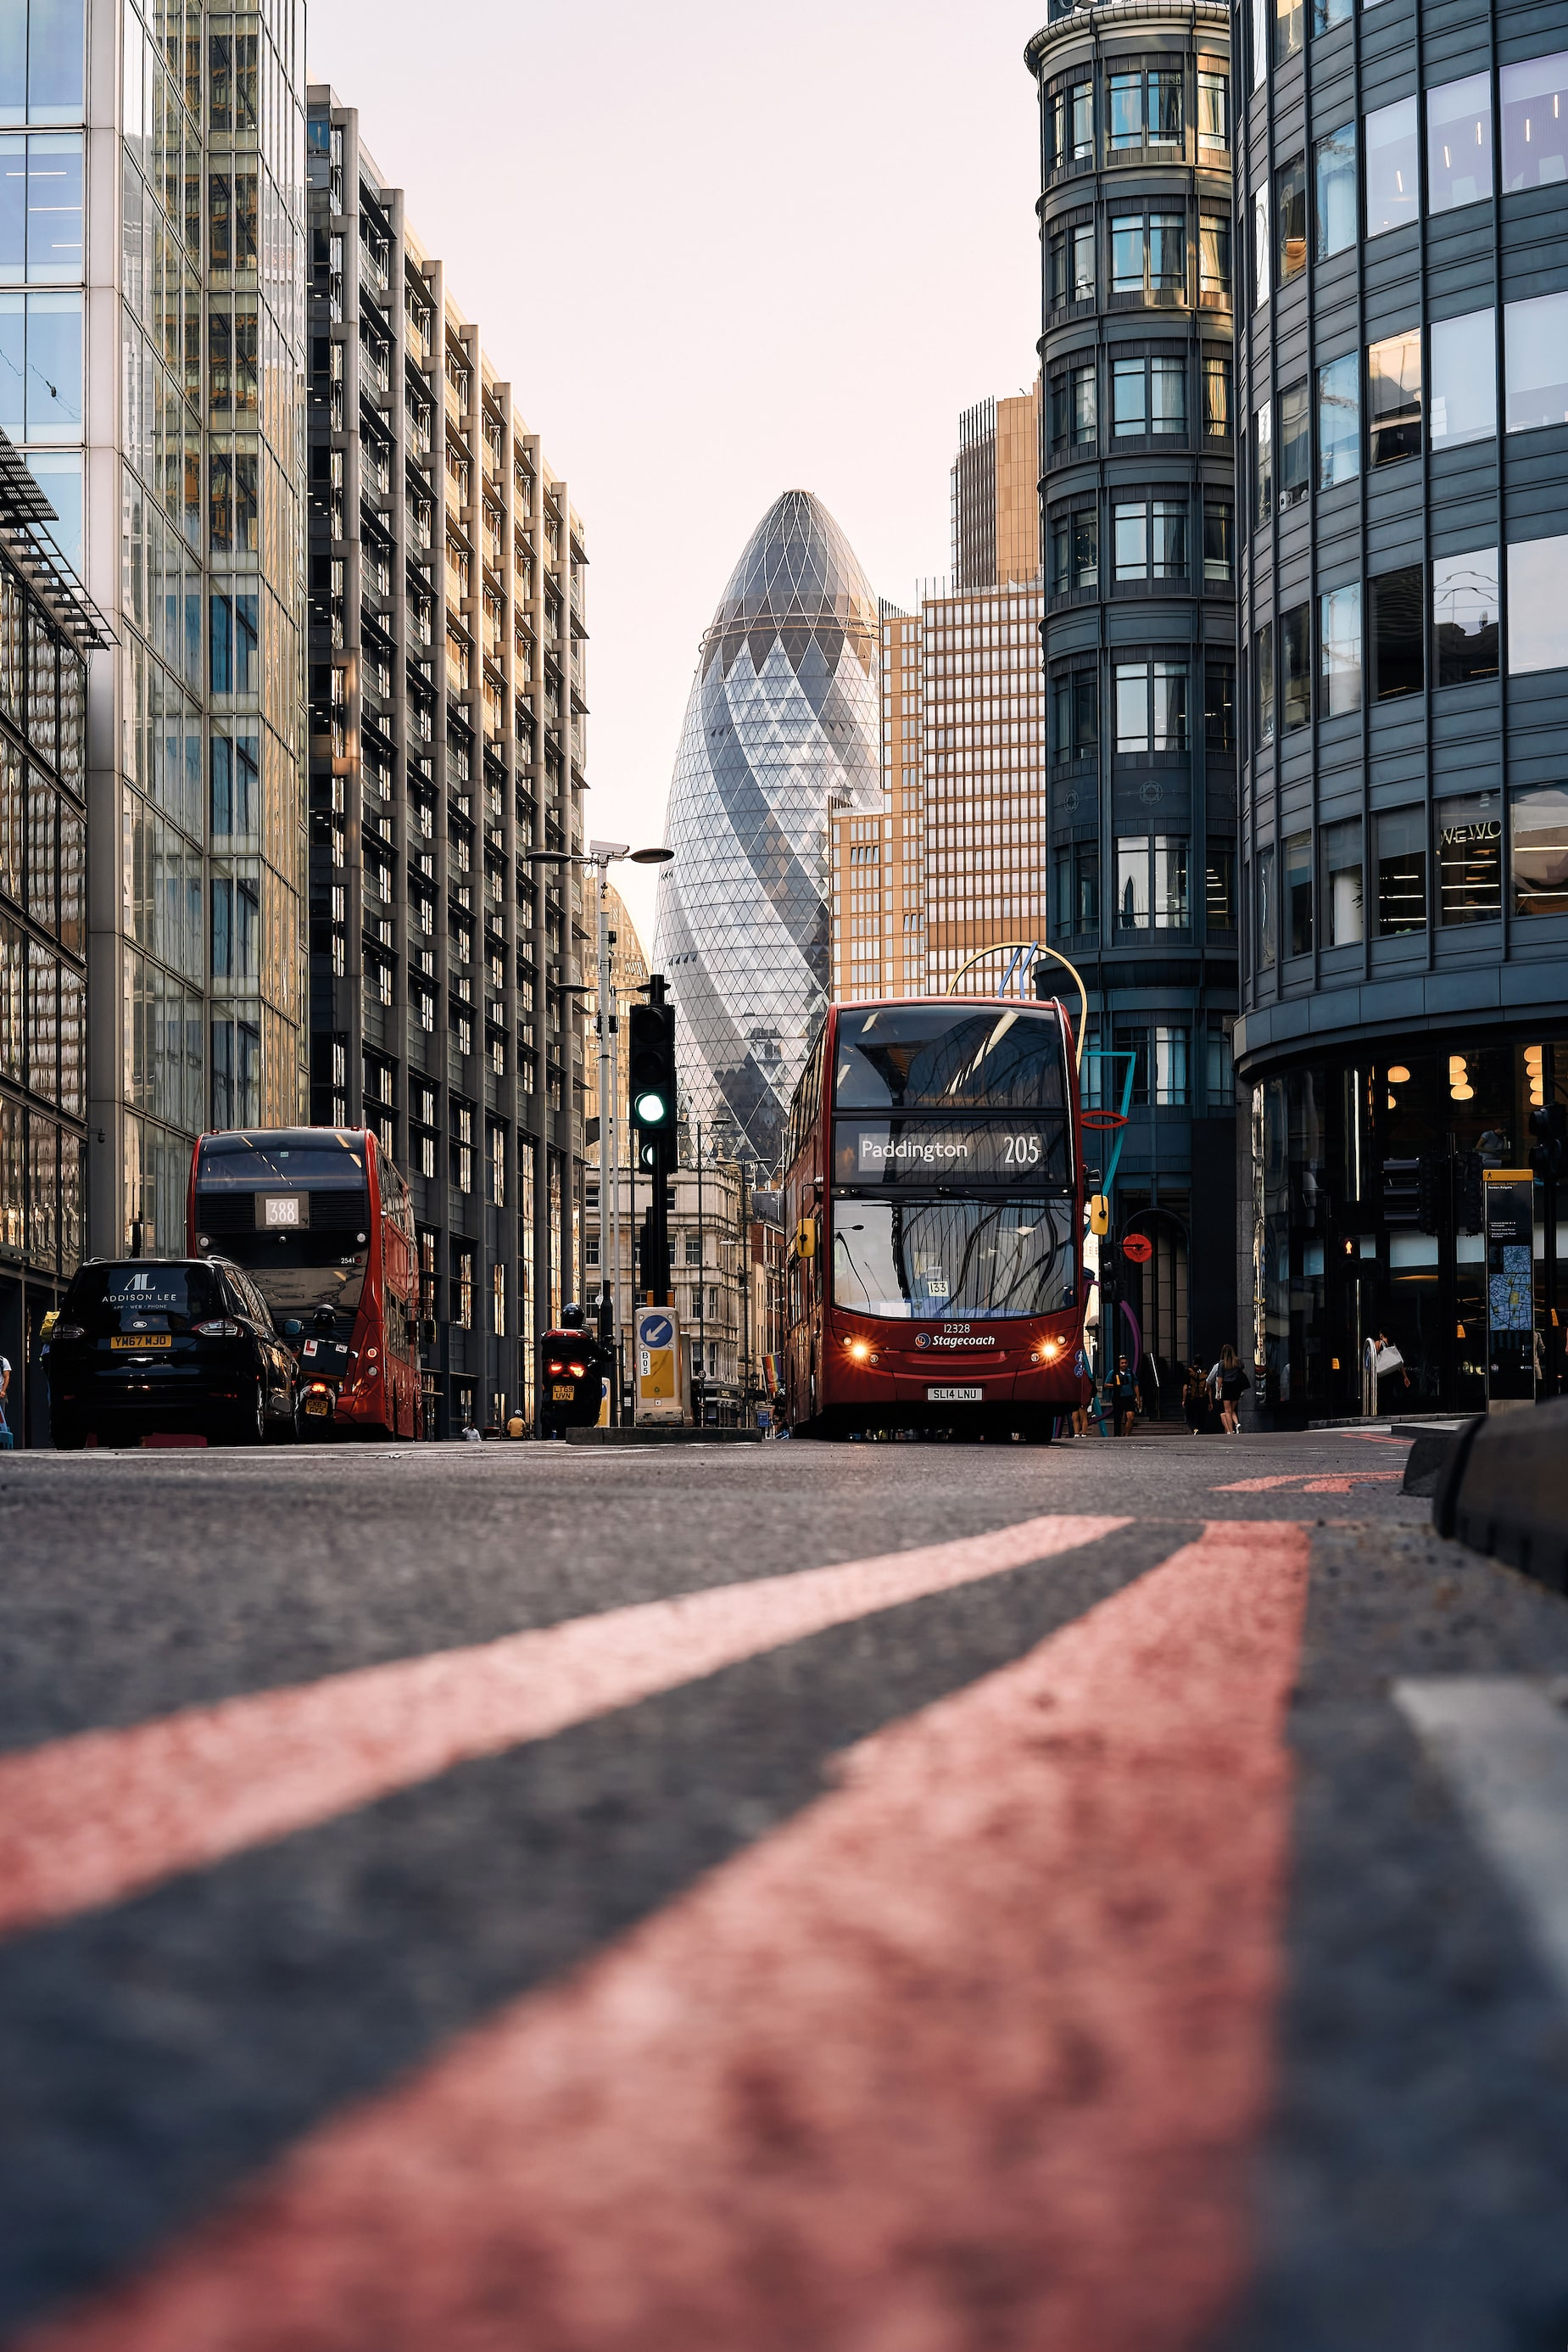 ron-timehin-sony-alpha-7c-low-angle-shot-of-a-london-street